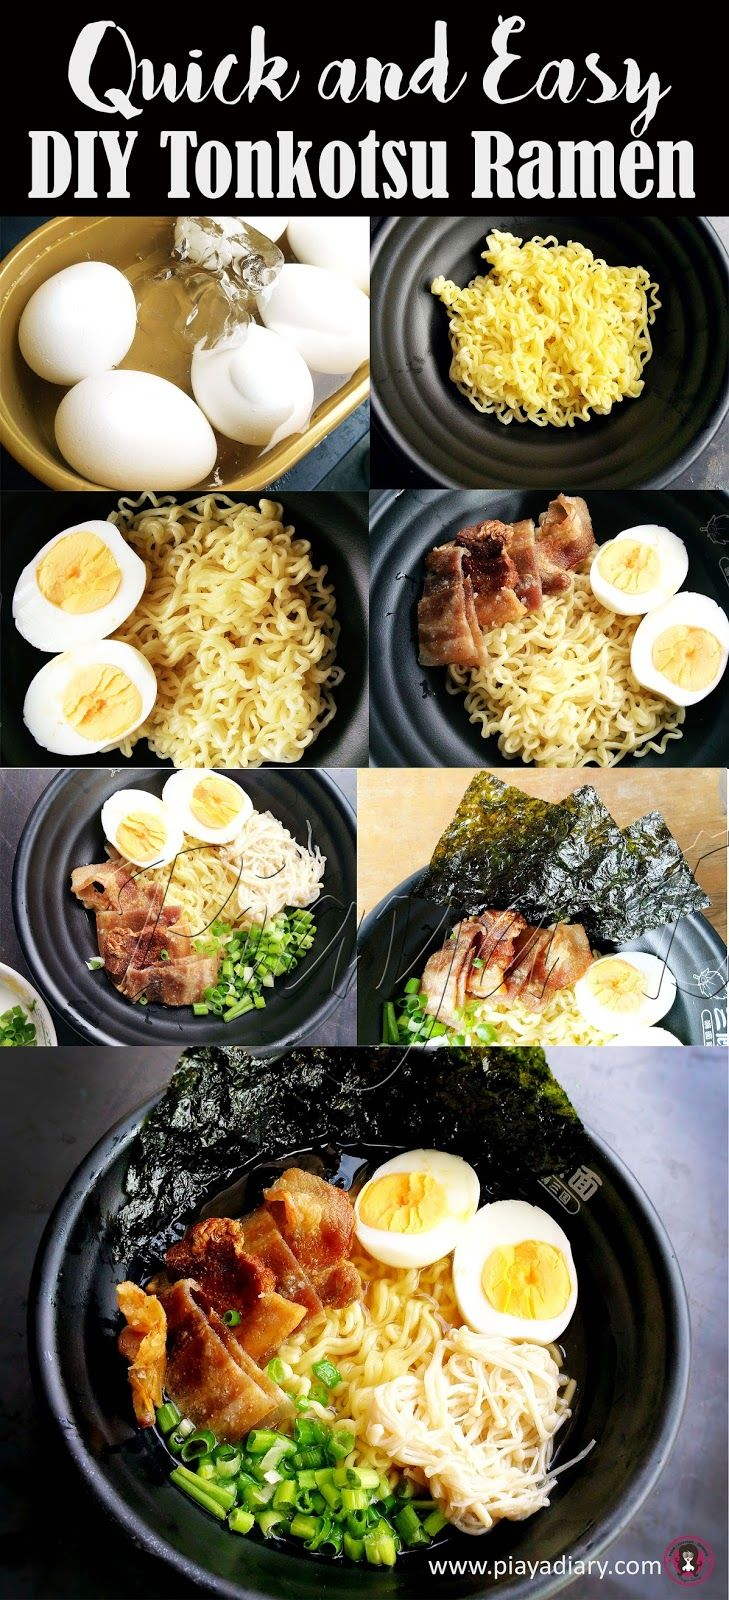 Super easy DIY Tonkotsu Ramen. Try it today